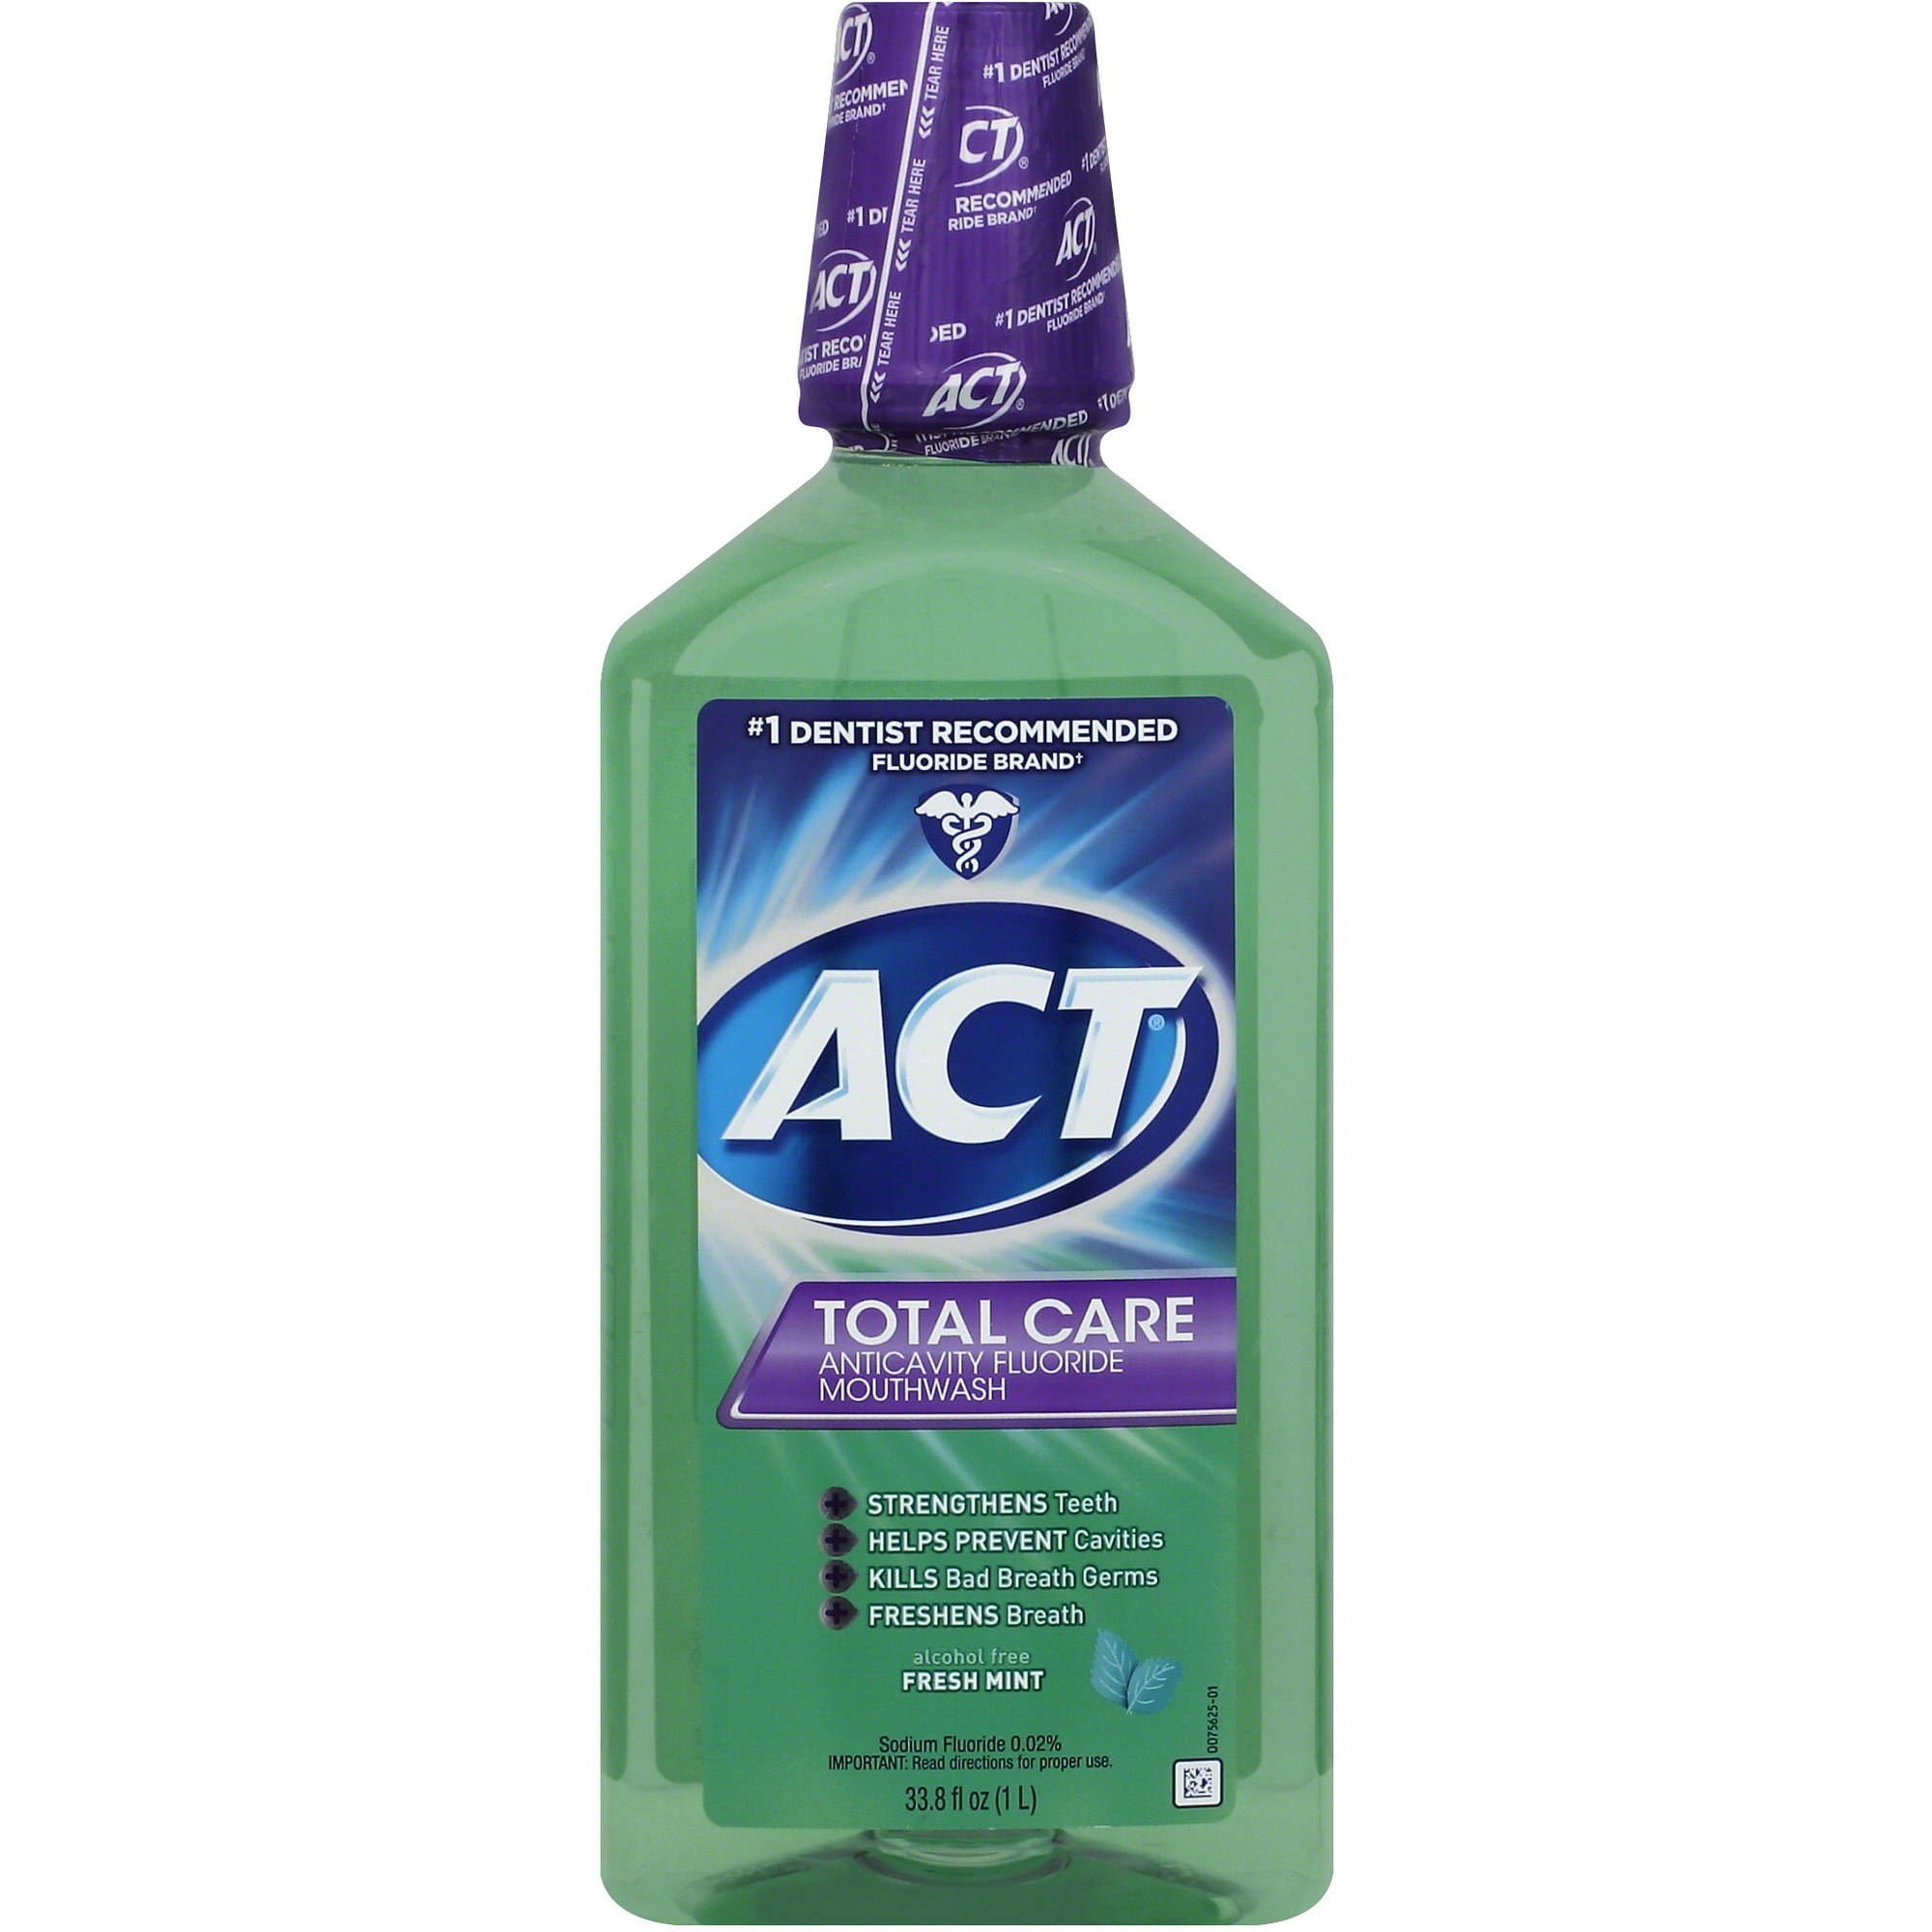 ACT Total Care Fresh Mint Anticavity Fluoride Mouthwash, 33.8 oz